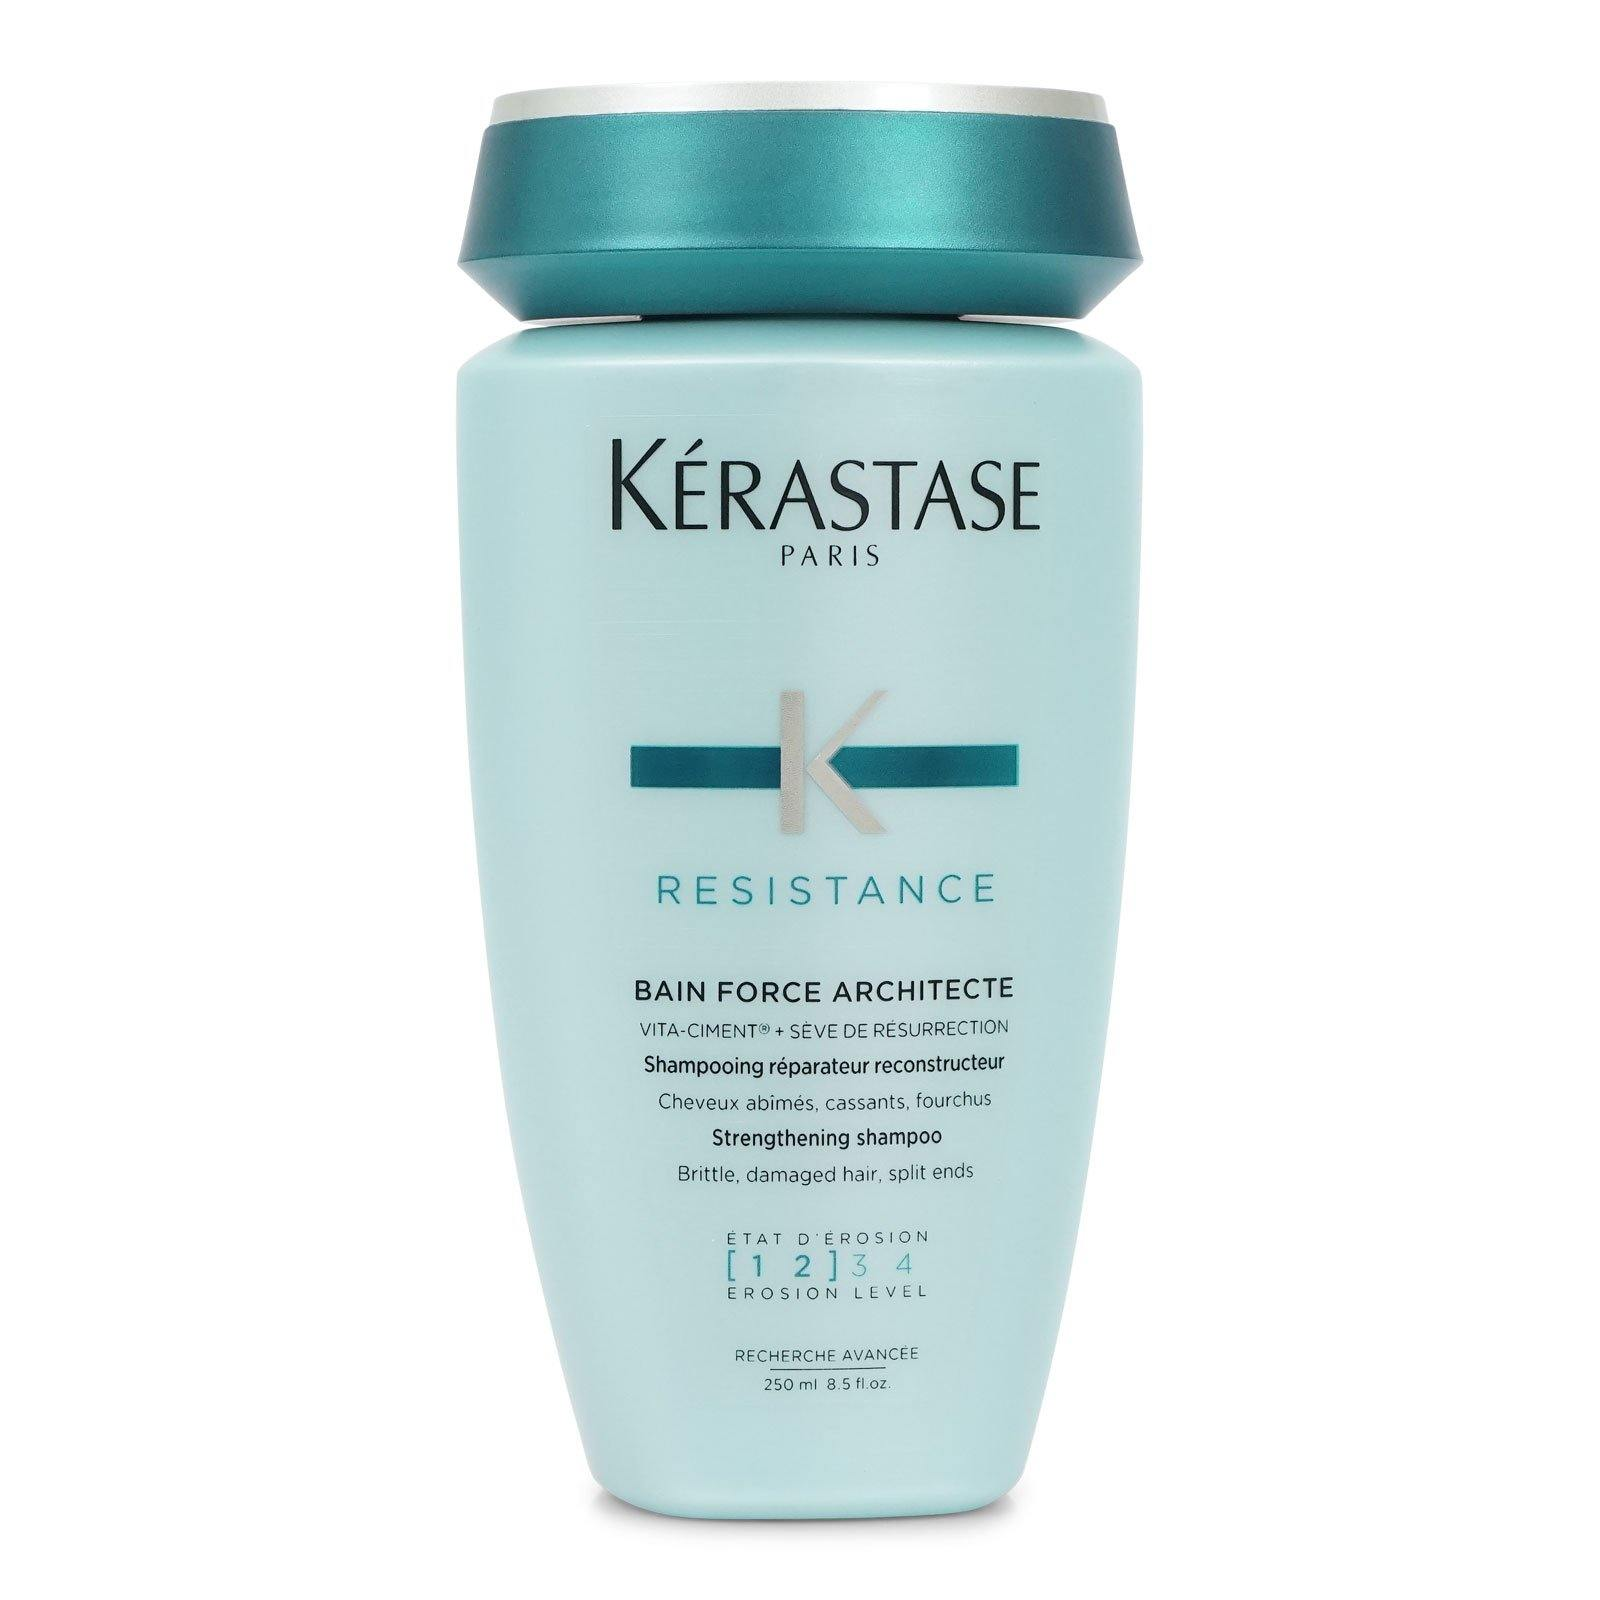 Kerastase Resistance Bain Force Architecte Shampoo 250ml/8.5 fl oz (3/cs)